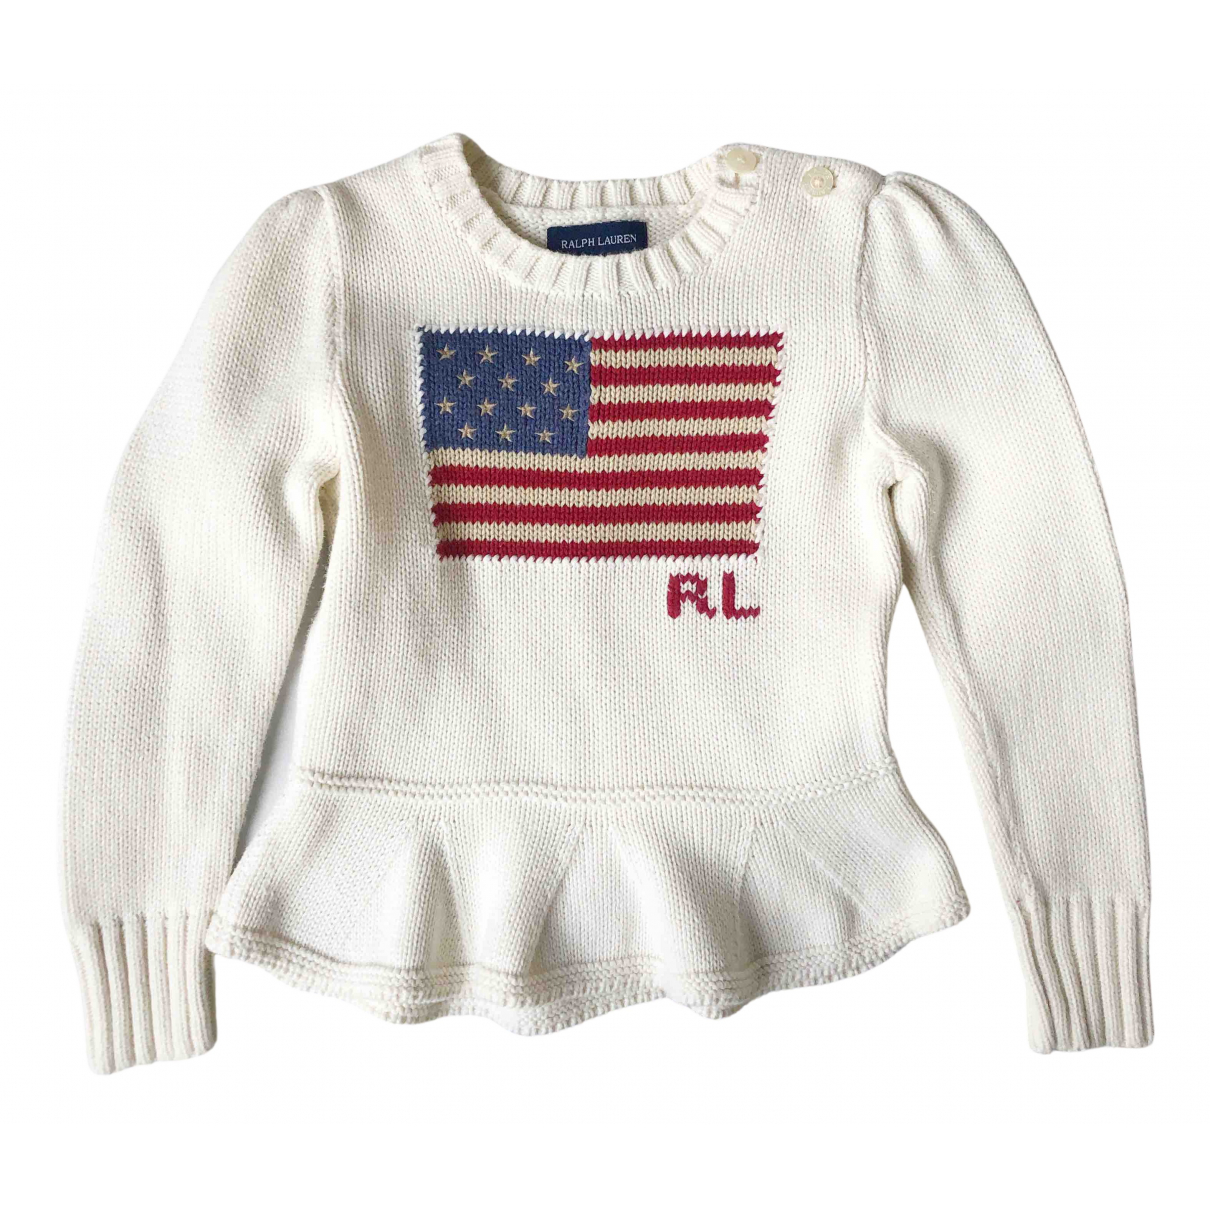 Ralph Lauren N Multicolour Cotton Knitwear for Kids 5 years - up to 108cm FR